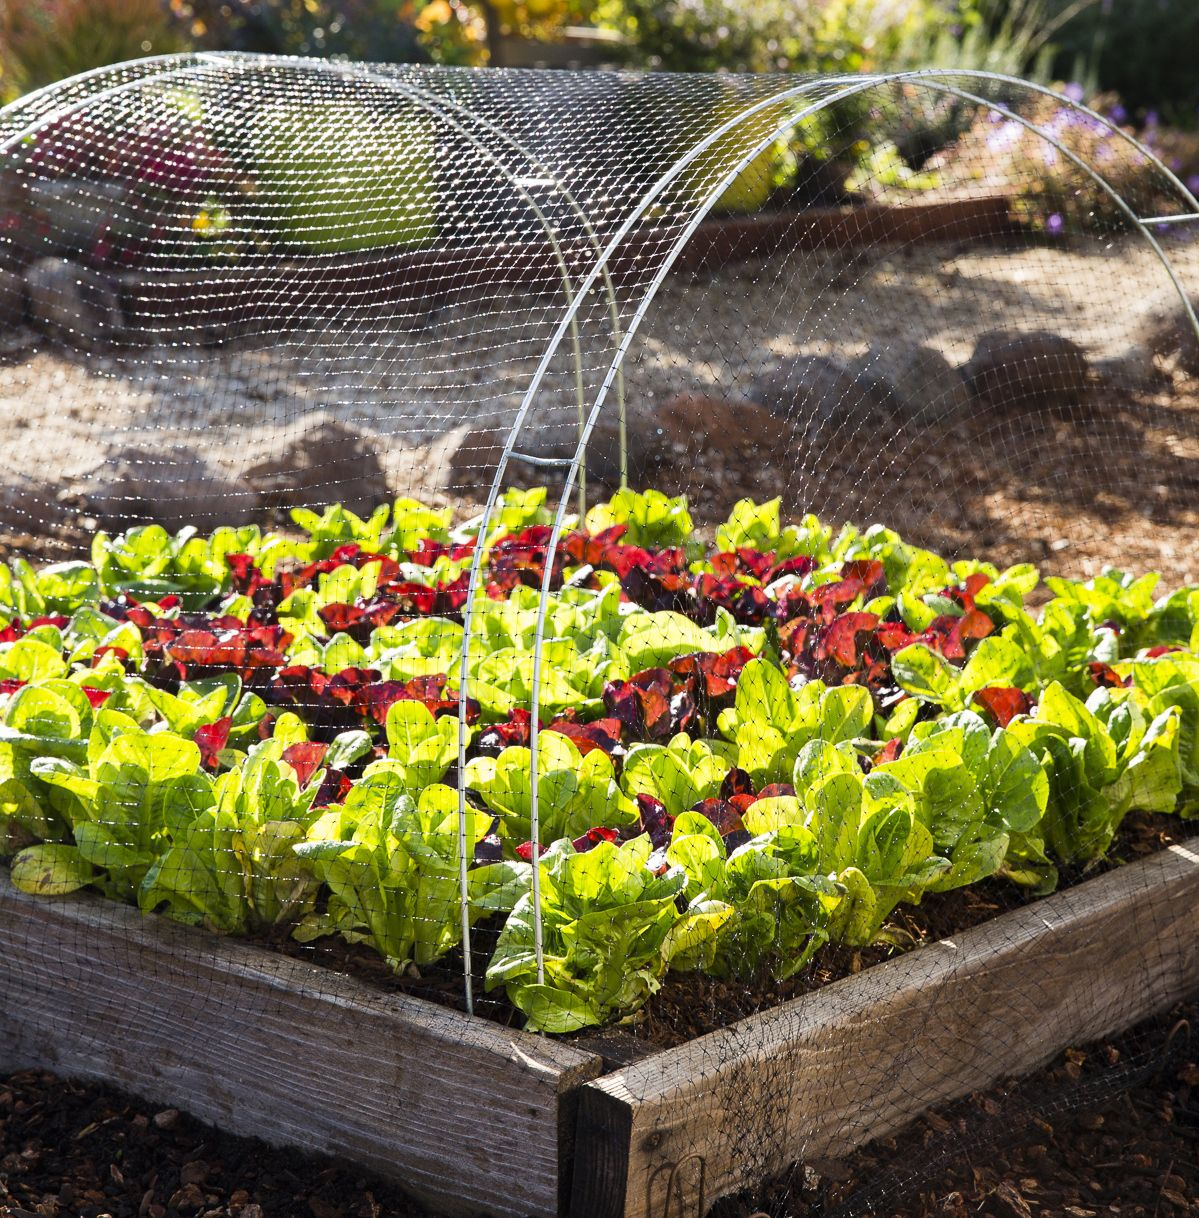 Protect Your Backyard Vegetables From Birds With This $3